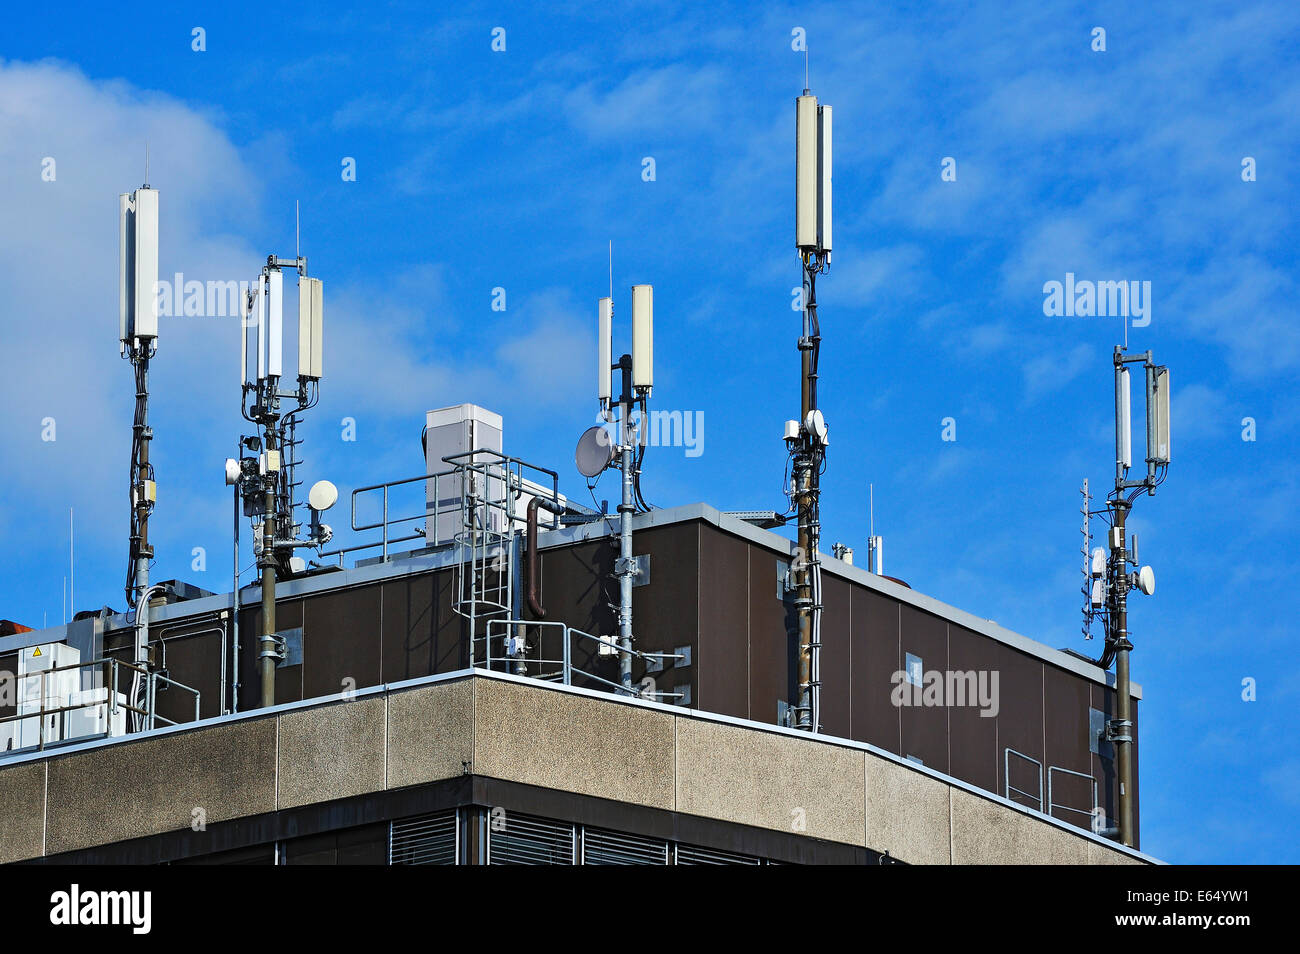 Various aerials on a building, Memmingen, Allgäu, Bavaria, Germany - Stock Image